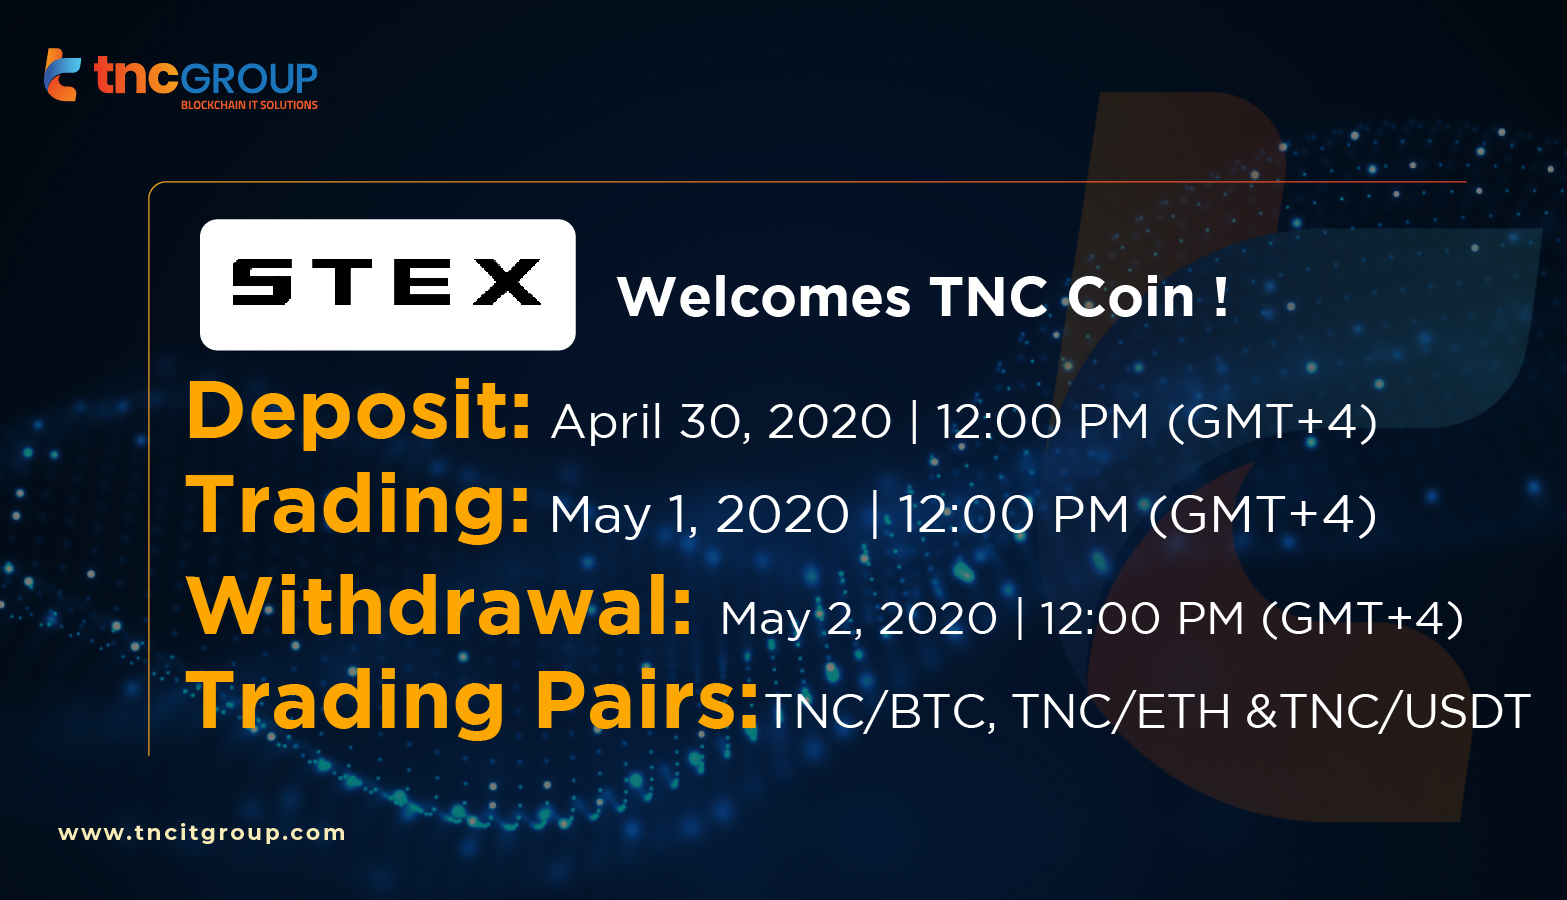 STEX welcomes TNC Coin